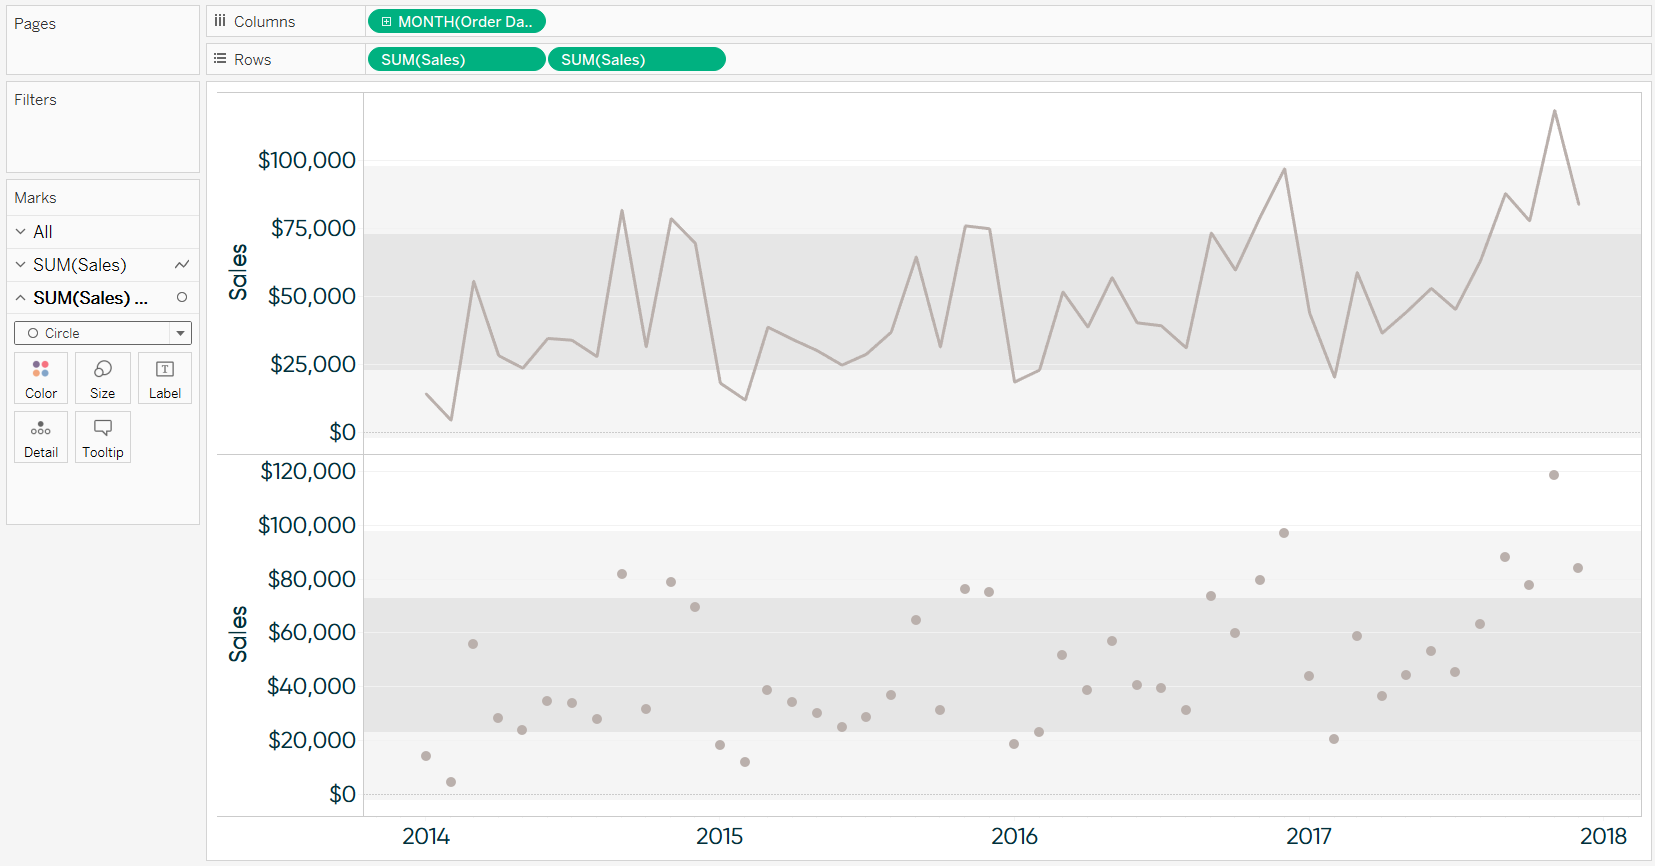 Tableau Sales by Month Two Rows